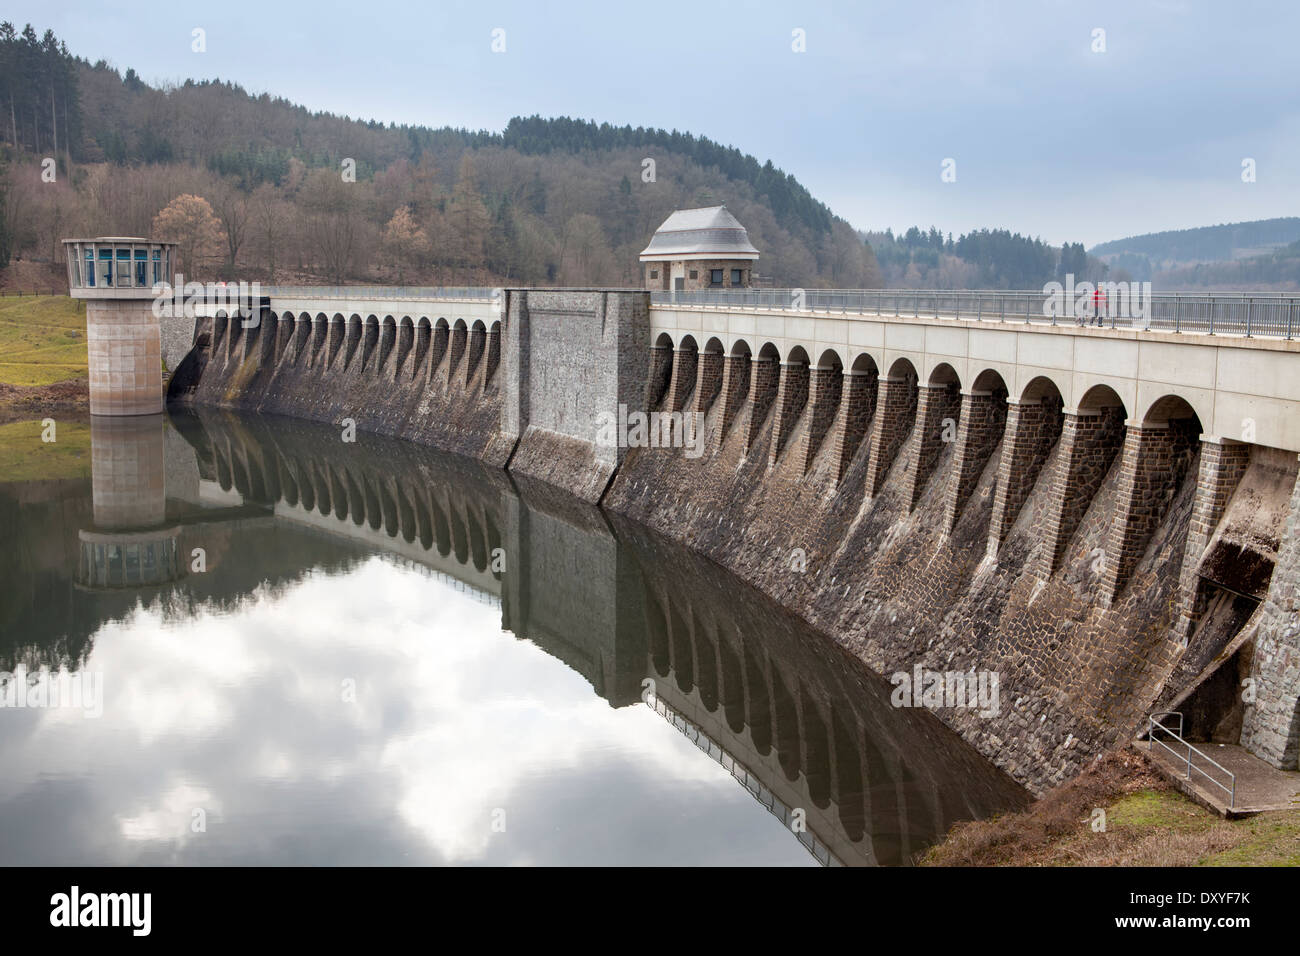 Dam of the Lister Reservoir, turbine tower at Bigge Reservoir hydroelectric power station, Olpe, Germany, Europe, Stock Photo